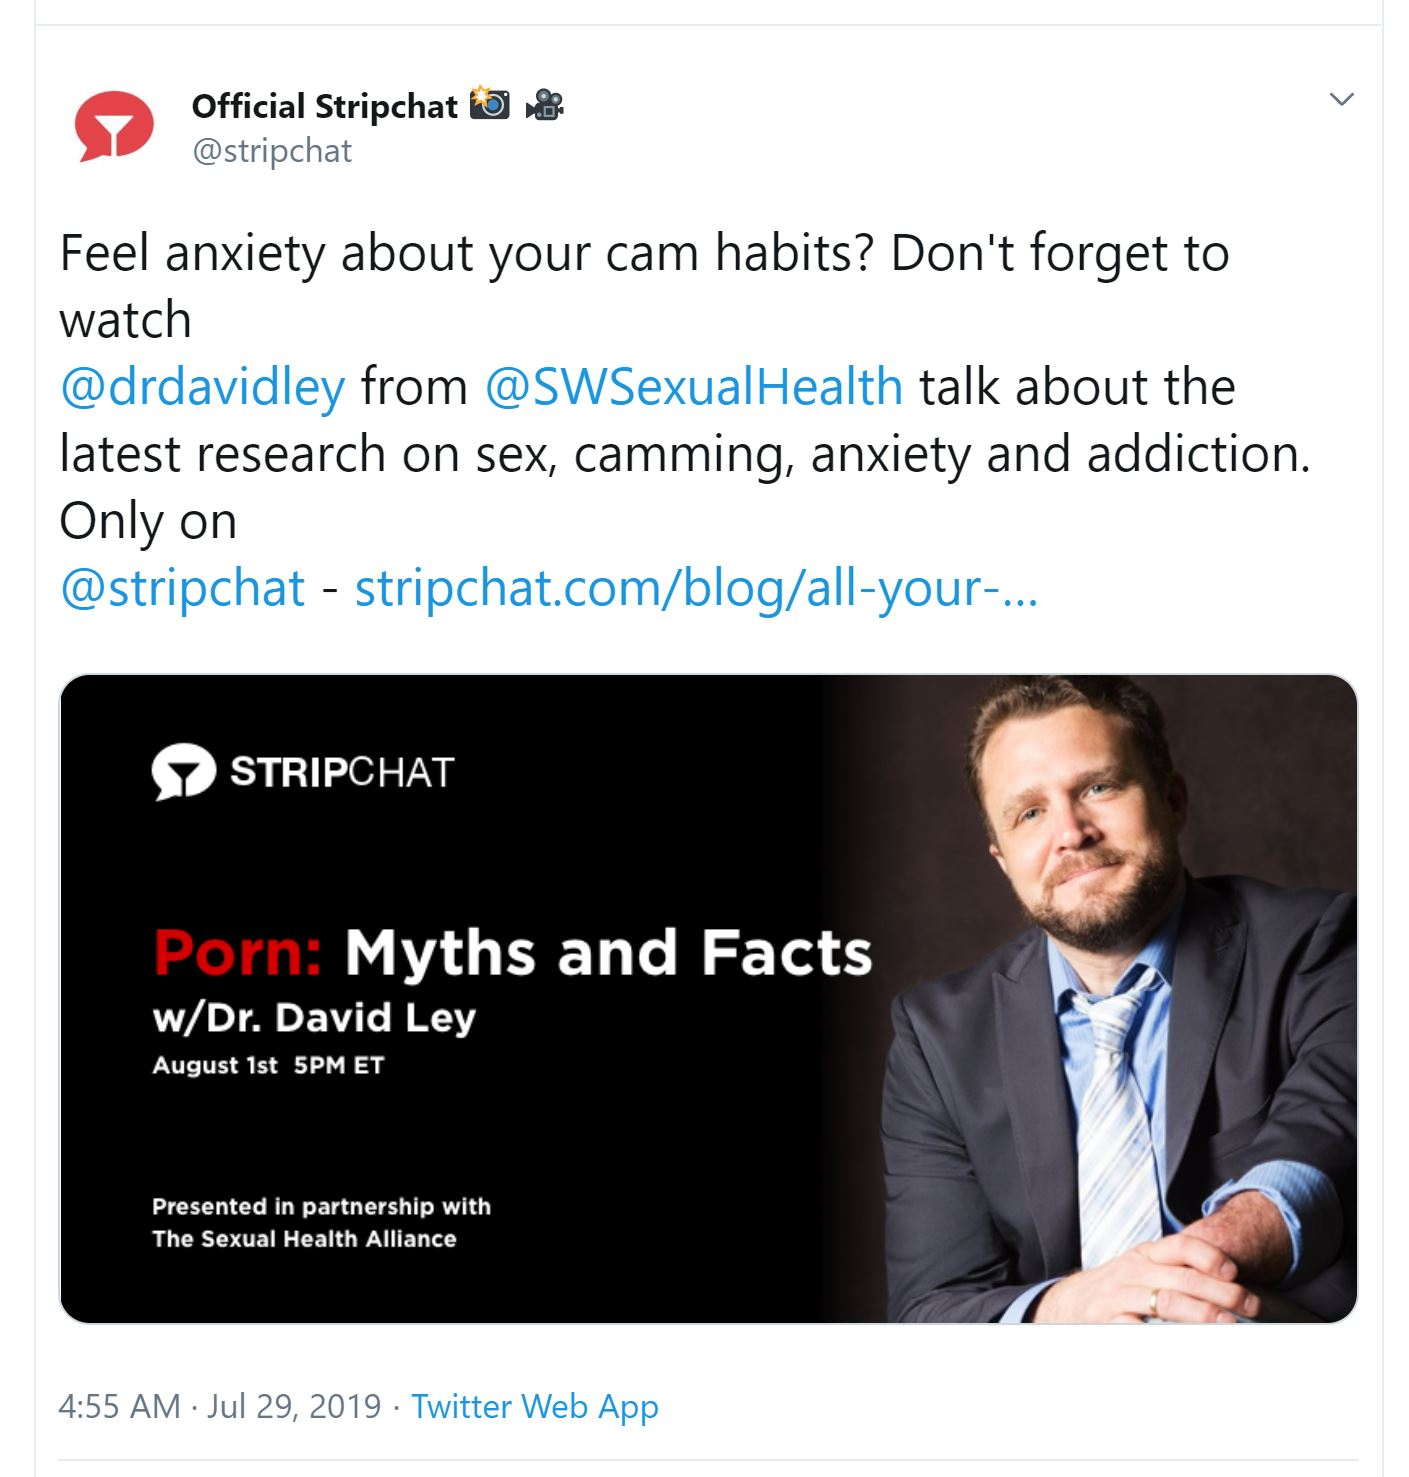 7-29-19 -Feel anxiety about your cam habits. Don't forget to watch -drdavidley from -SWSexualHealthtalk about the latest research on sex, camming, anxiety and addiction.